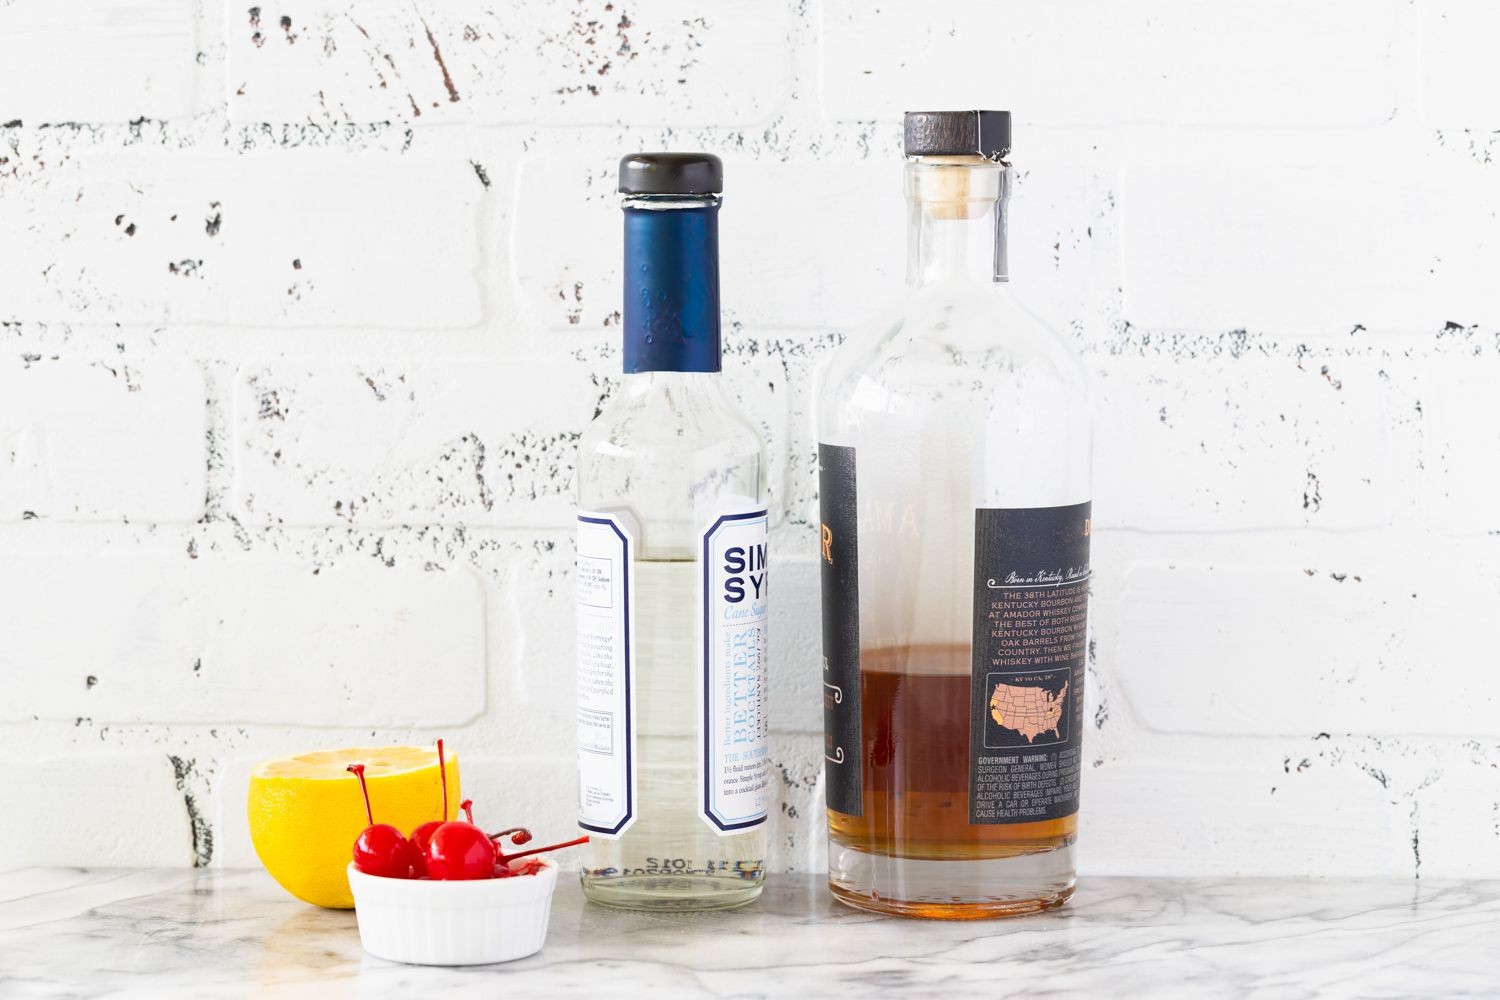 Ingredients for making a whiskey sour